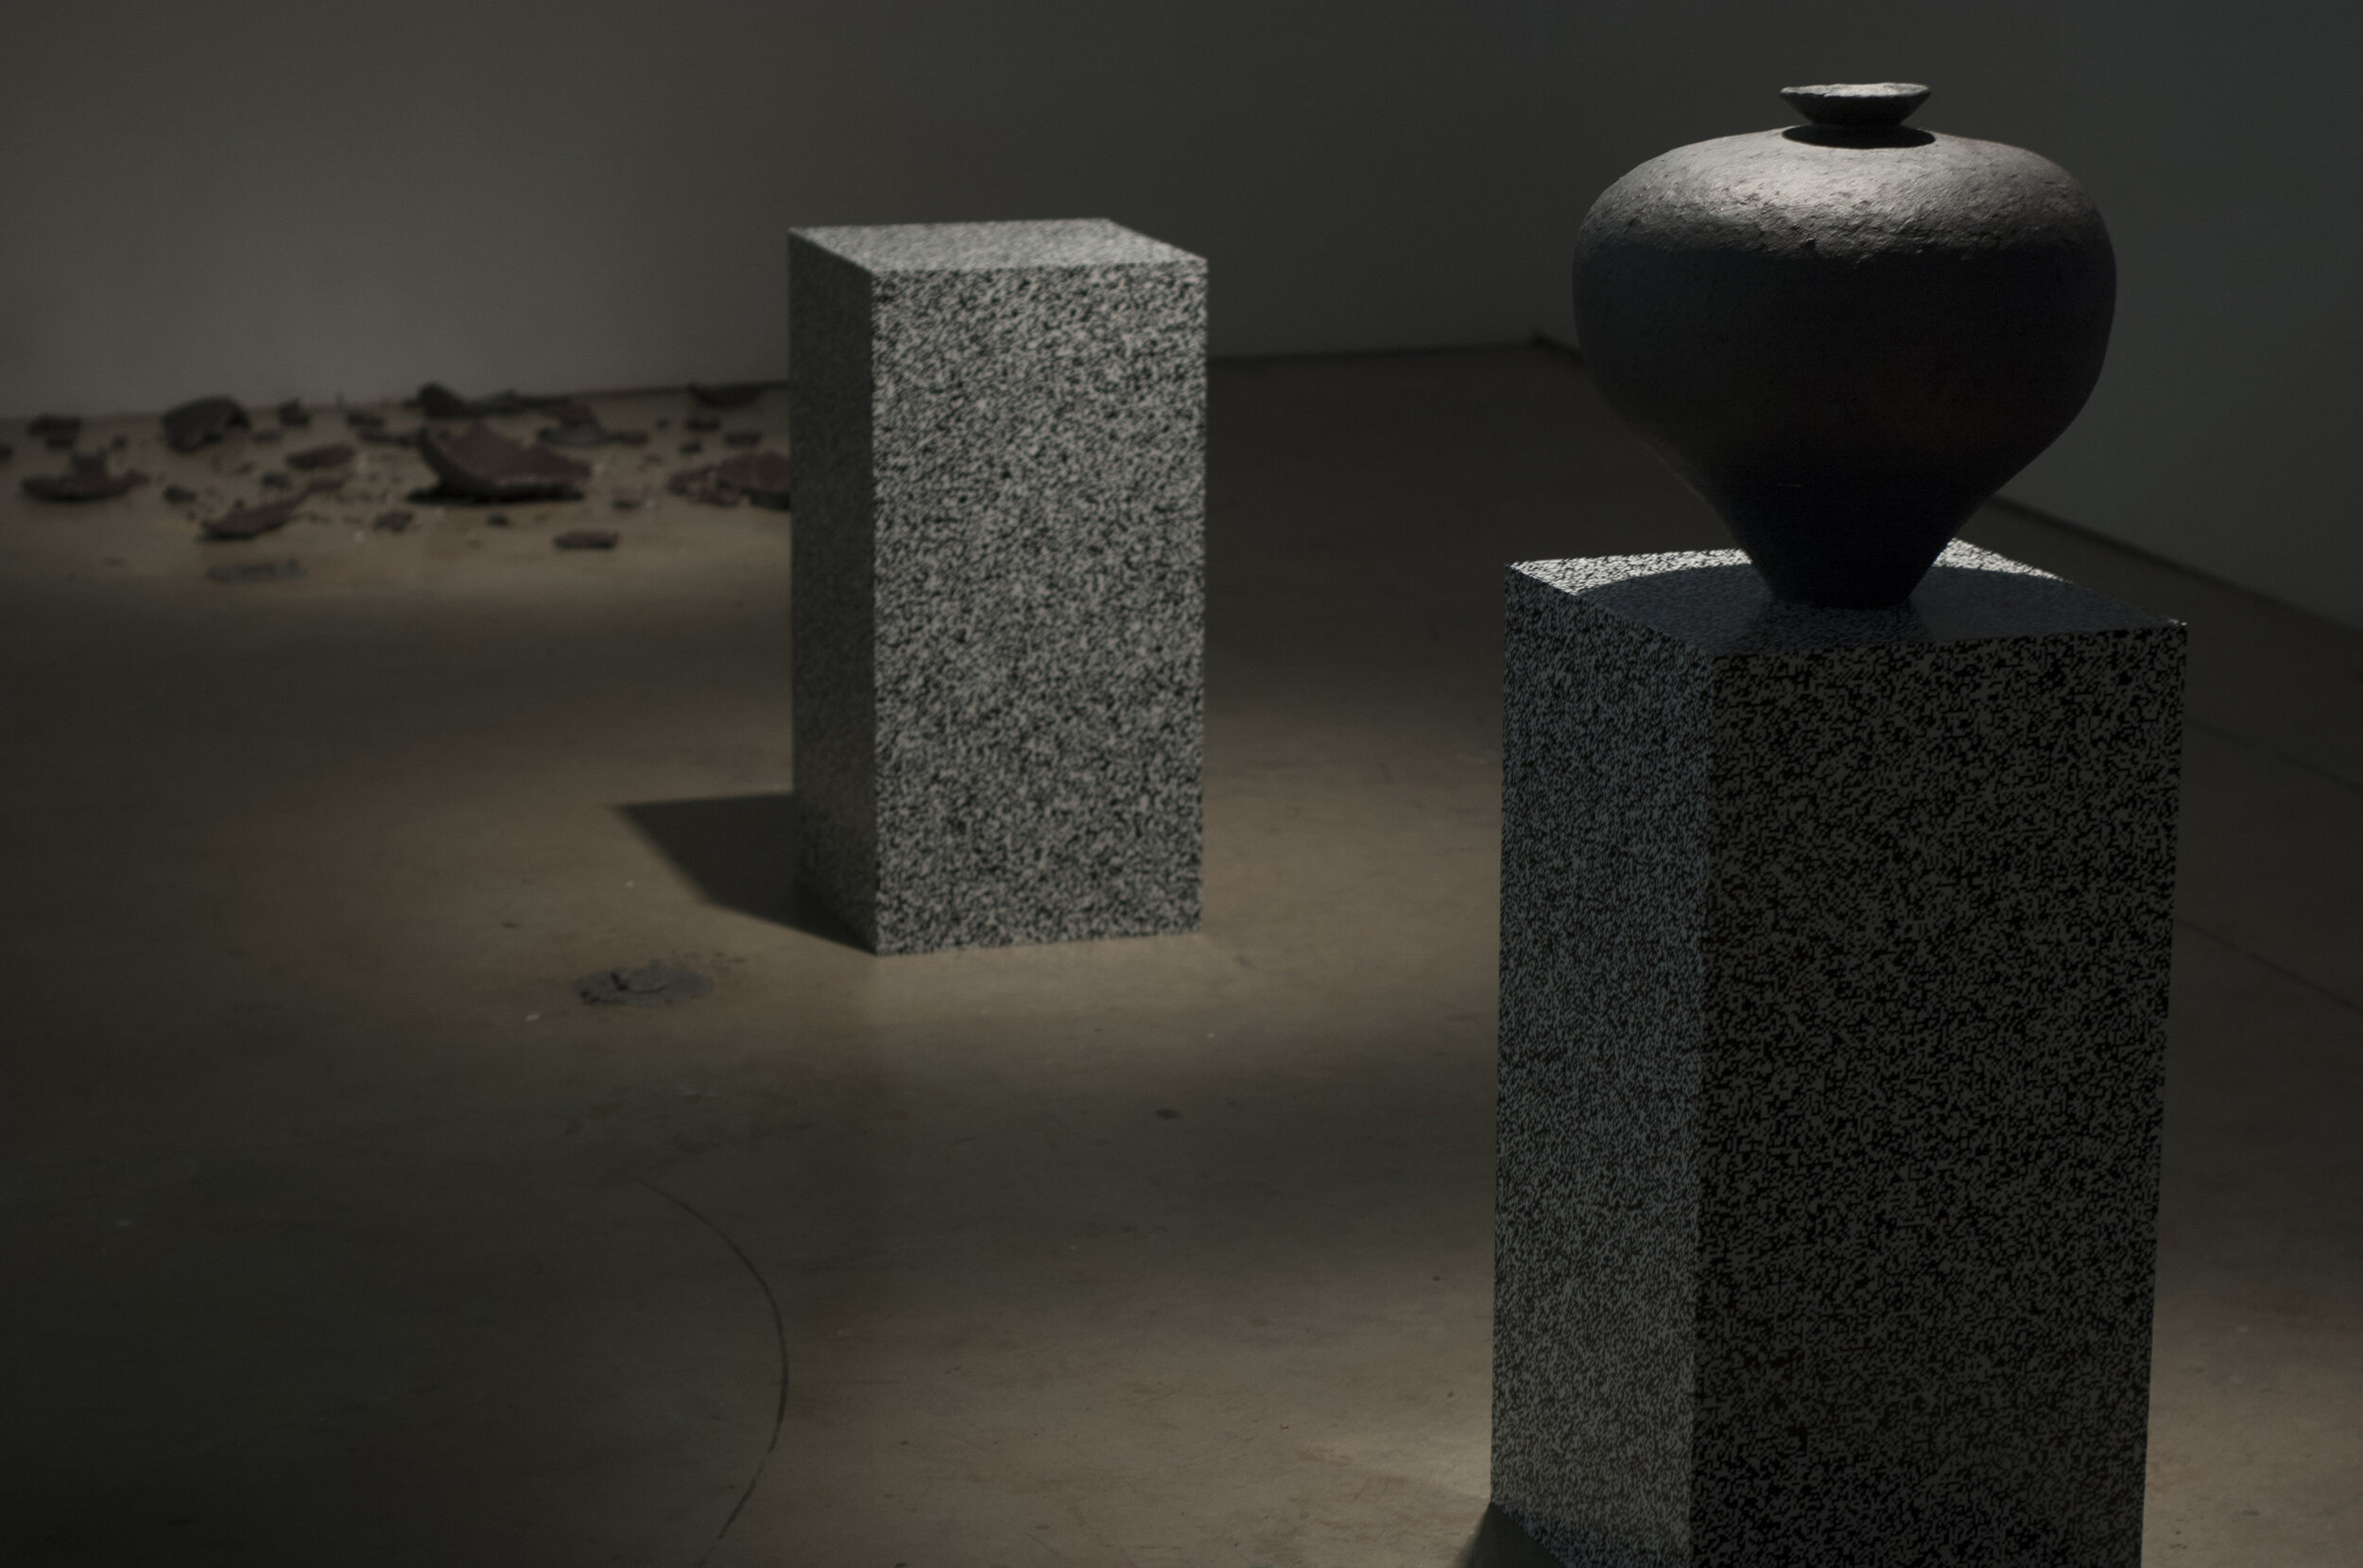 Michael Edward Miller  Level One: Agency (prototype) , 2017, hand-coiled reduction fired storage jars with granite feldspar, large smokey quartz crystals, patterned vinyl, MDF plinths, digital timer, sound, light, players